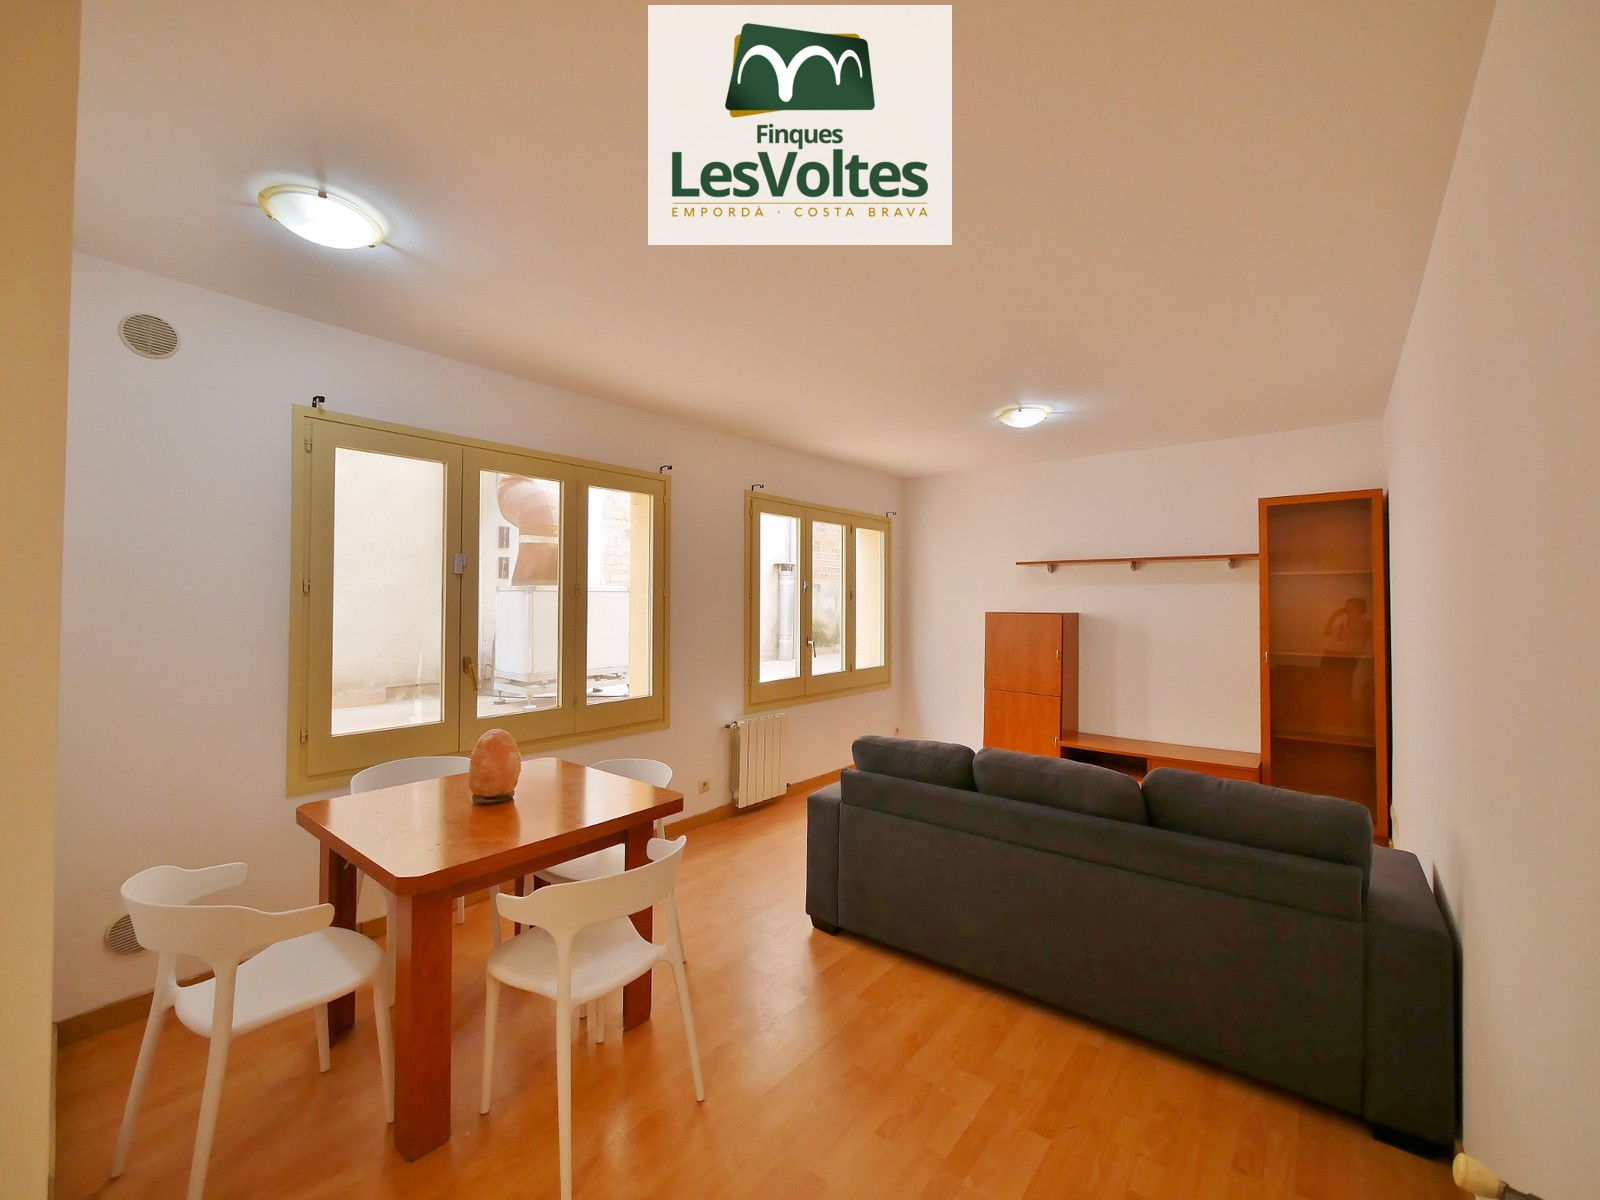 FURNISHED AND EQUIPPED CENTRAL STUDIO OF 42 M2 FOR RENT IN LA BISBAL D'EMPORDÀ.